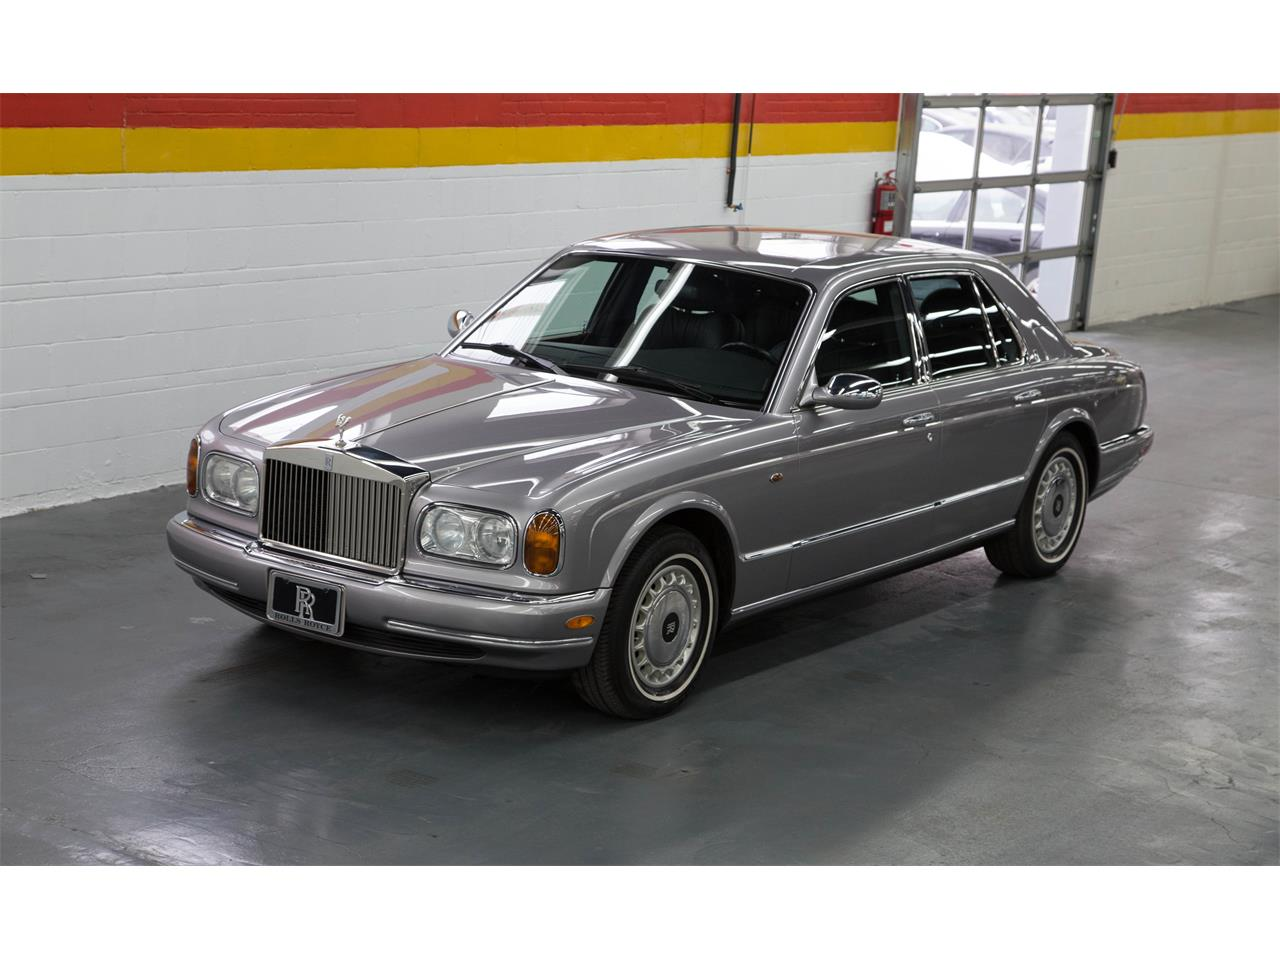 Large Picture of '99 Rolls-Royce Silver Seraph located in Montréal Quebec - $59,995.00 Offered by John Scotti Classic Cars - M1YP